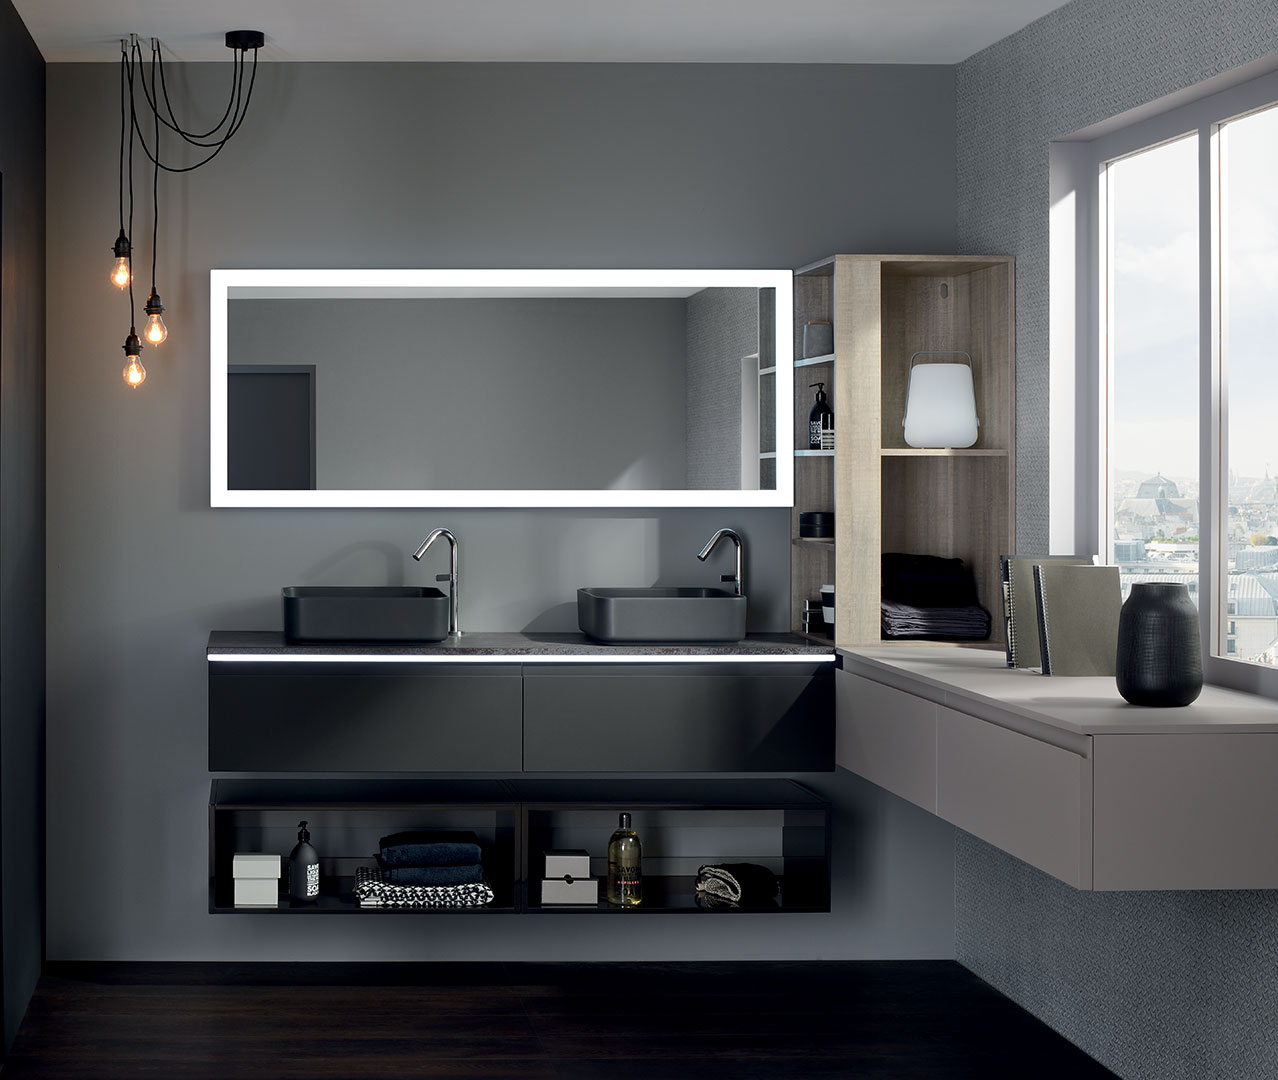 gamme halo meuble salle de bain design sanijura. Black Bedroom Furniture Sets. Home Design Ideas